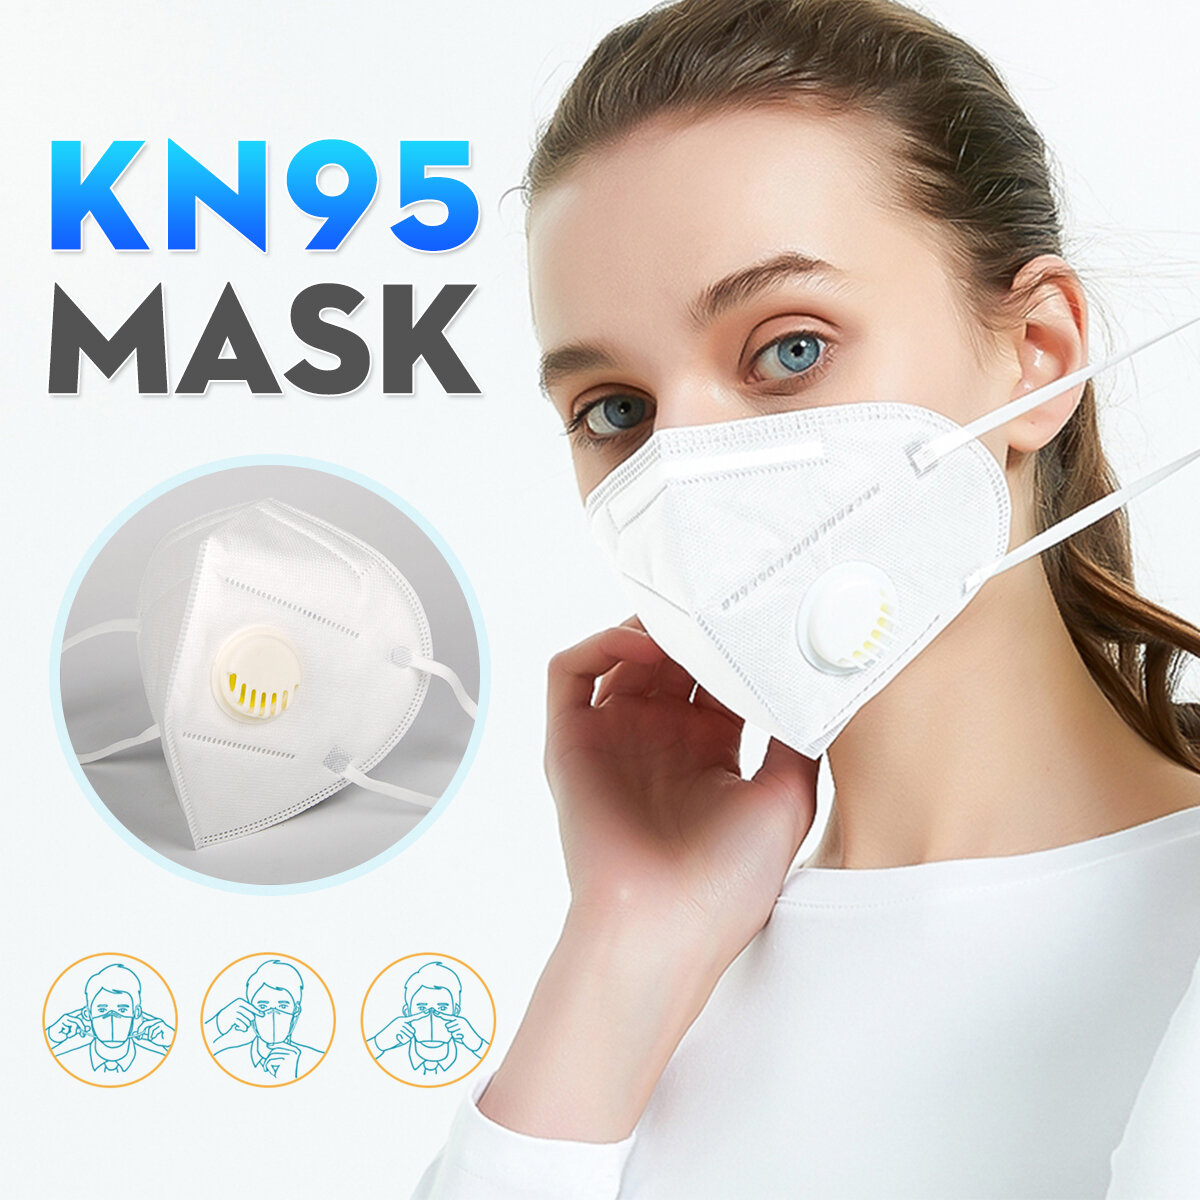 KN95 Masks With breathing valve Passed The GB-2626-KN95 Test PM2.5 Filter Protective Mask